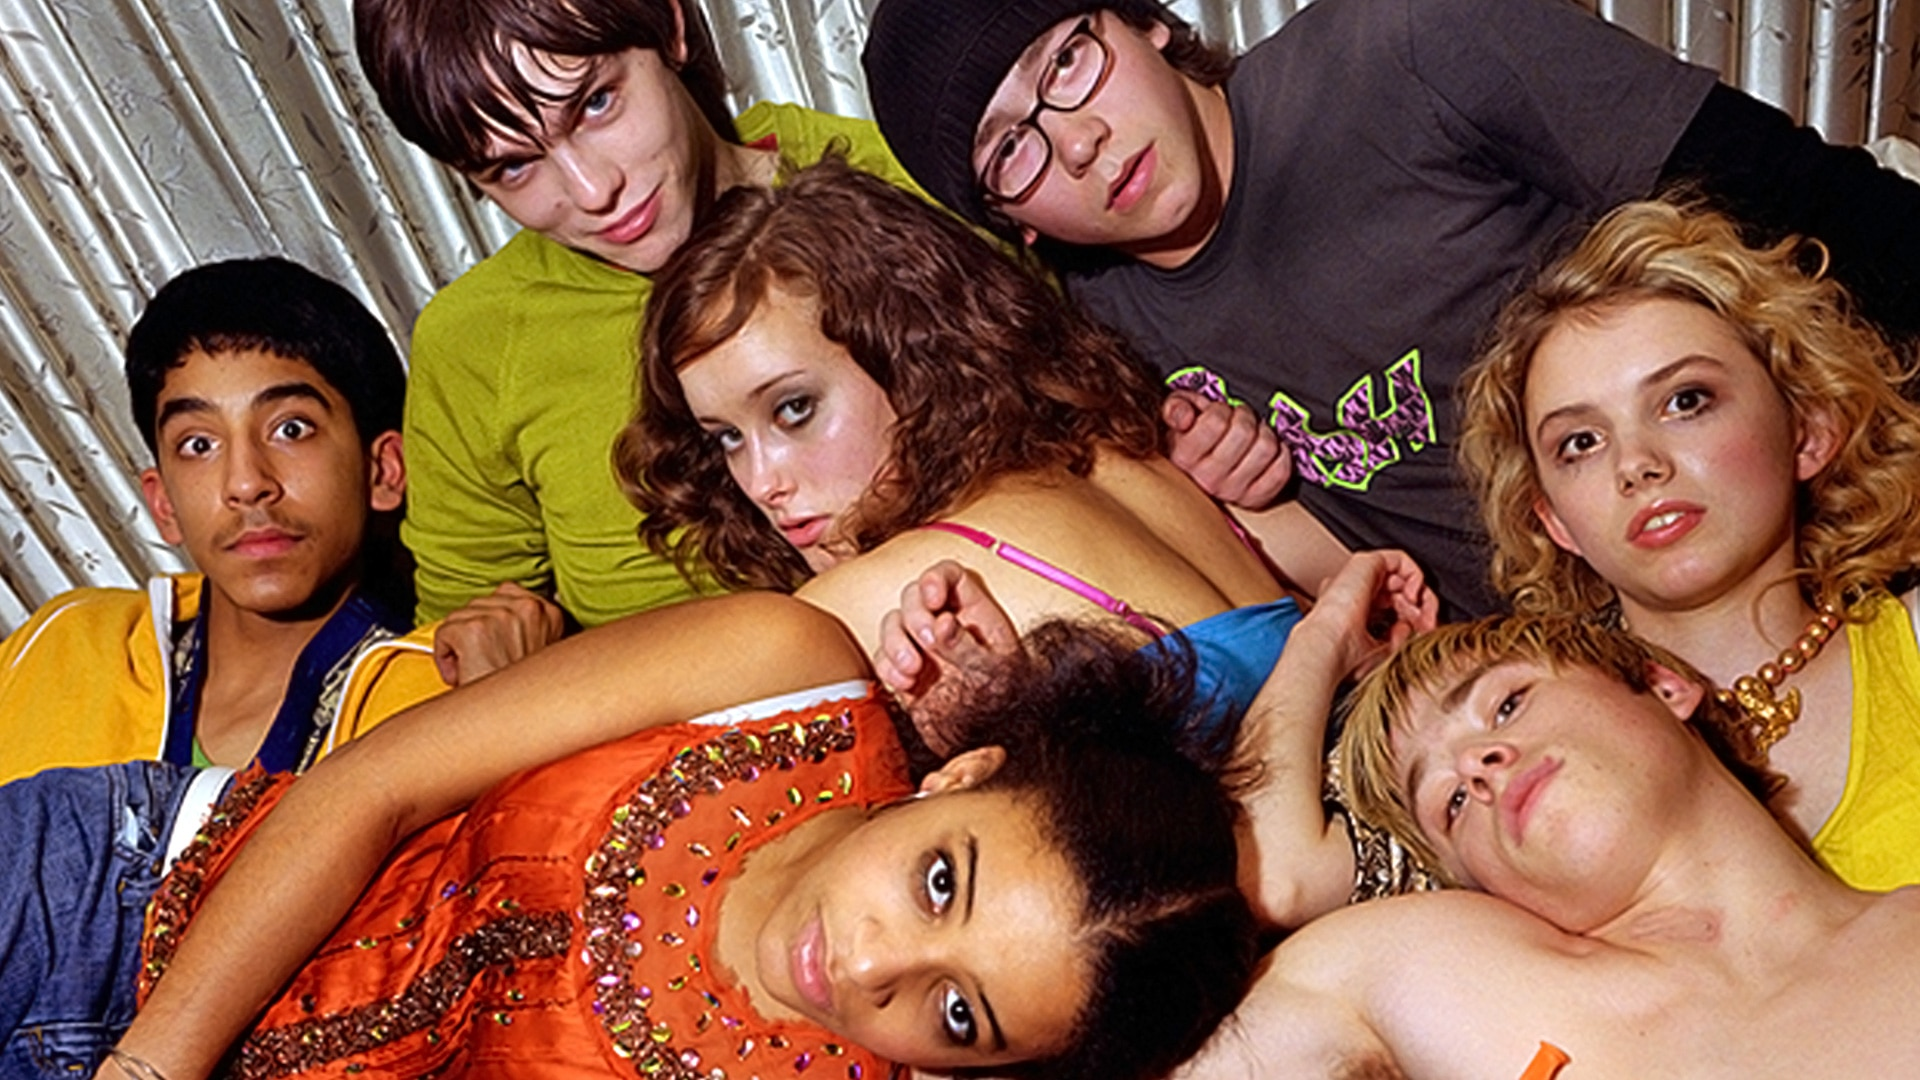 The skins cast lying in a pile